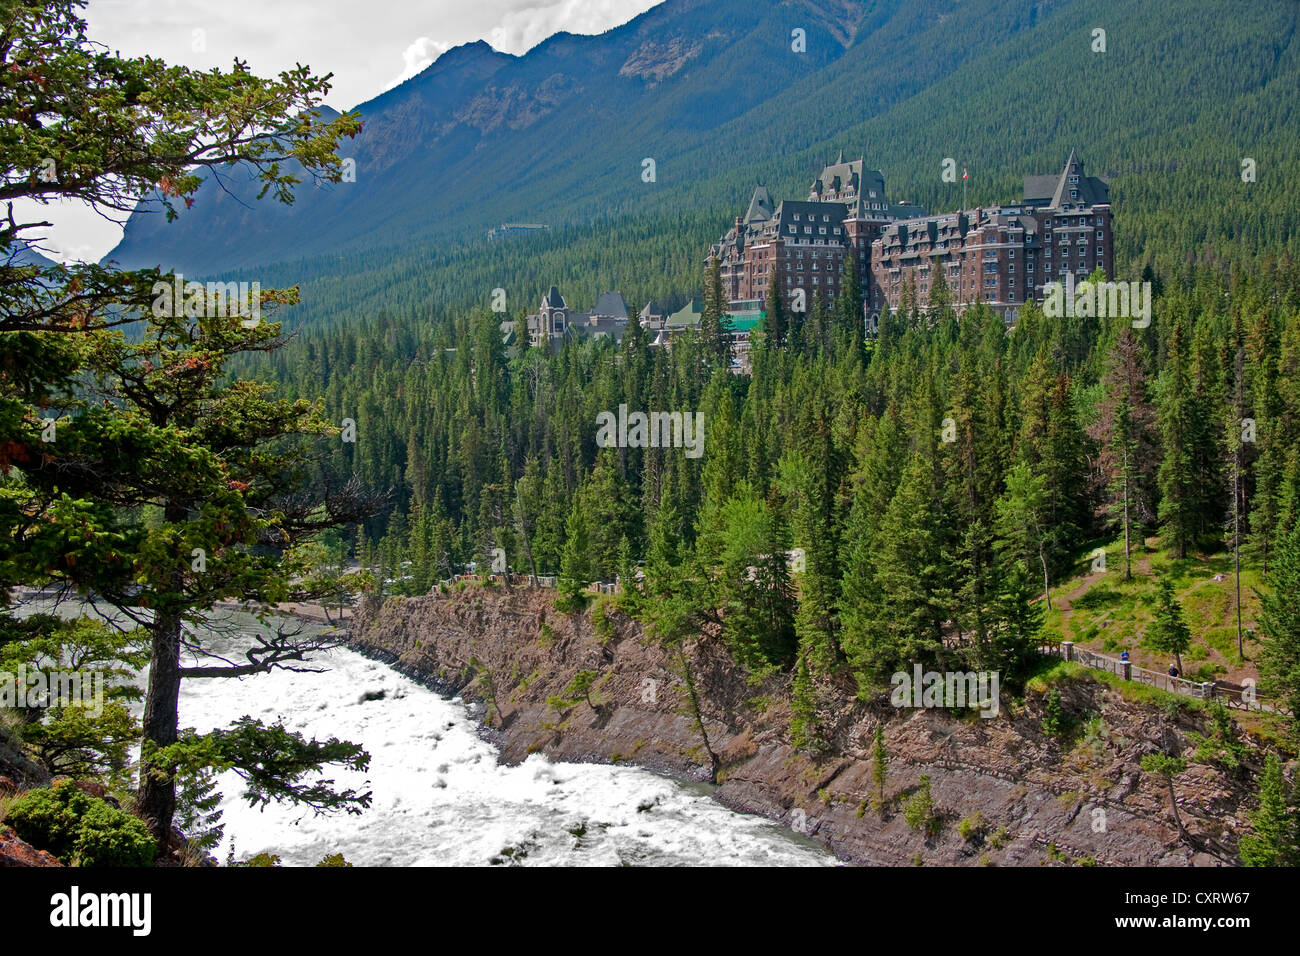 Banff Springs Hotel overlooking the Bow River Falls in Banff National Park, Alberta - Stock Image